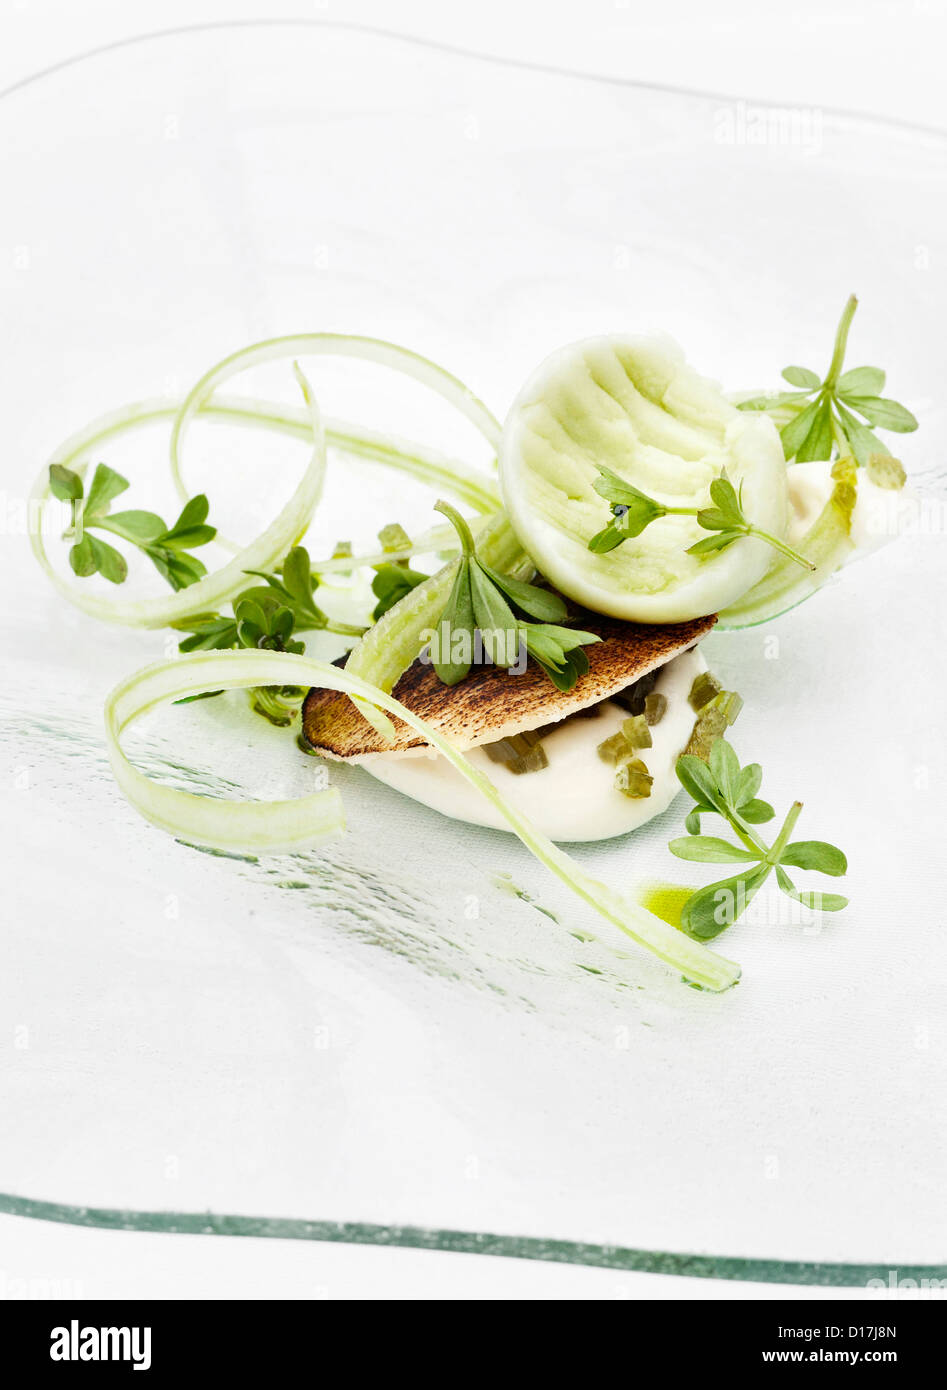 Plate of fish with herbs - Stock Image